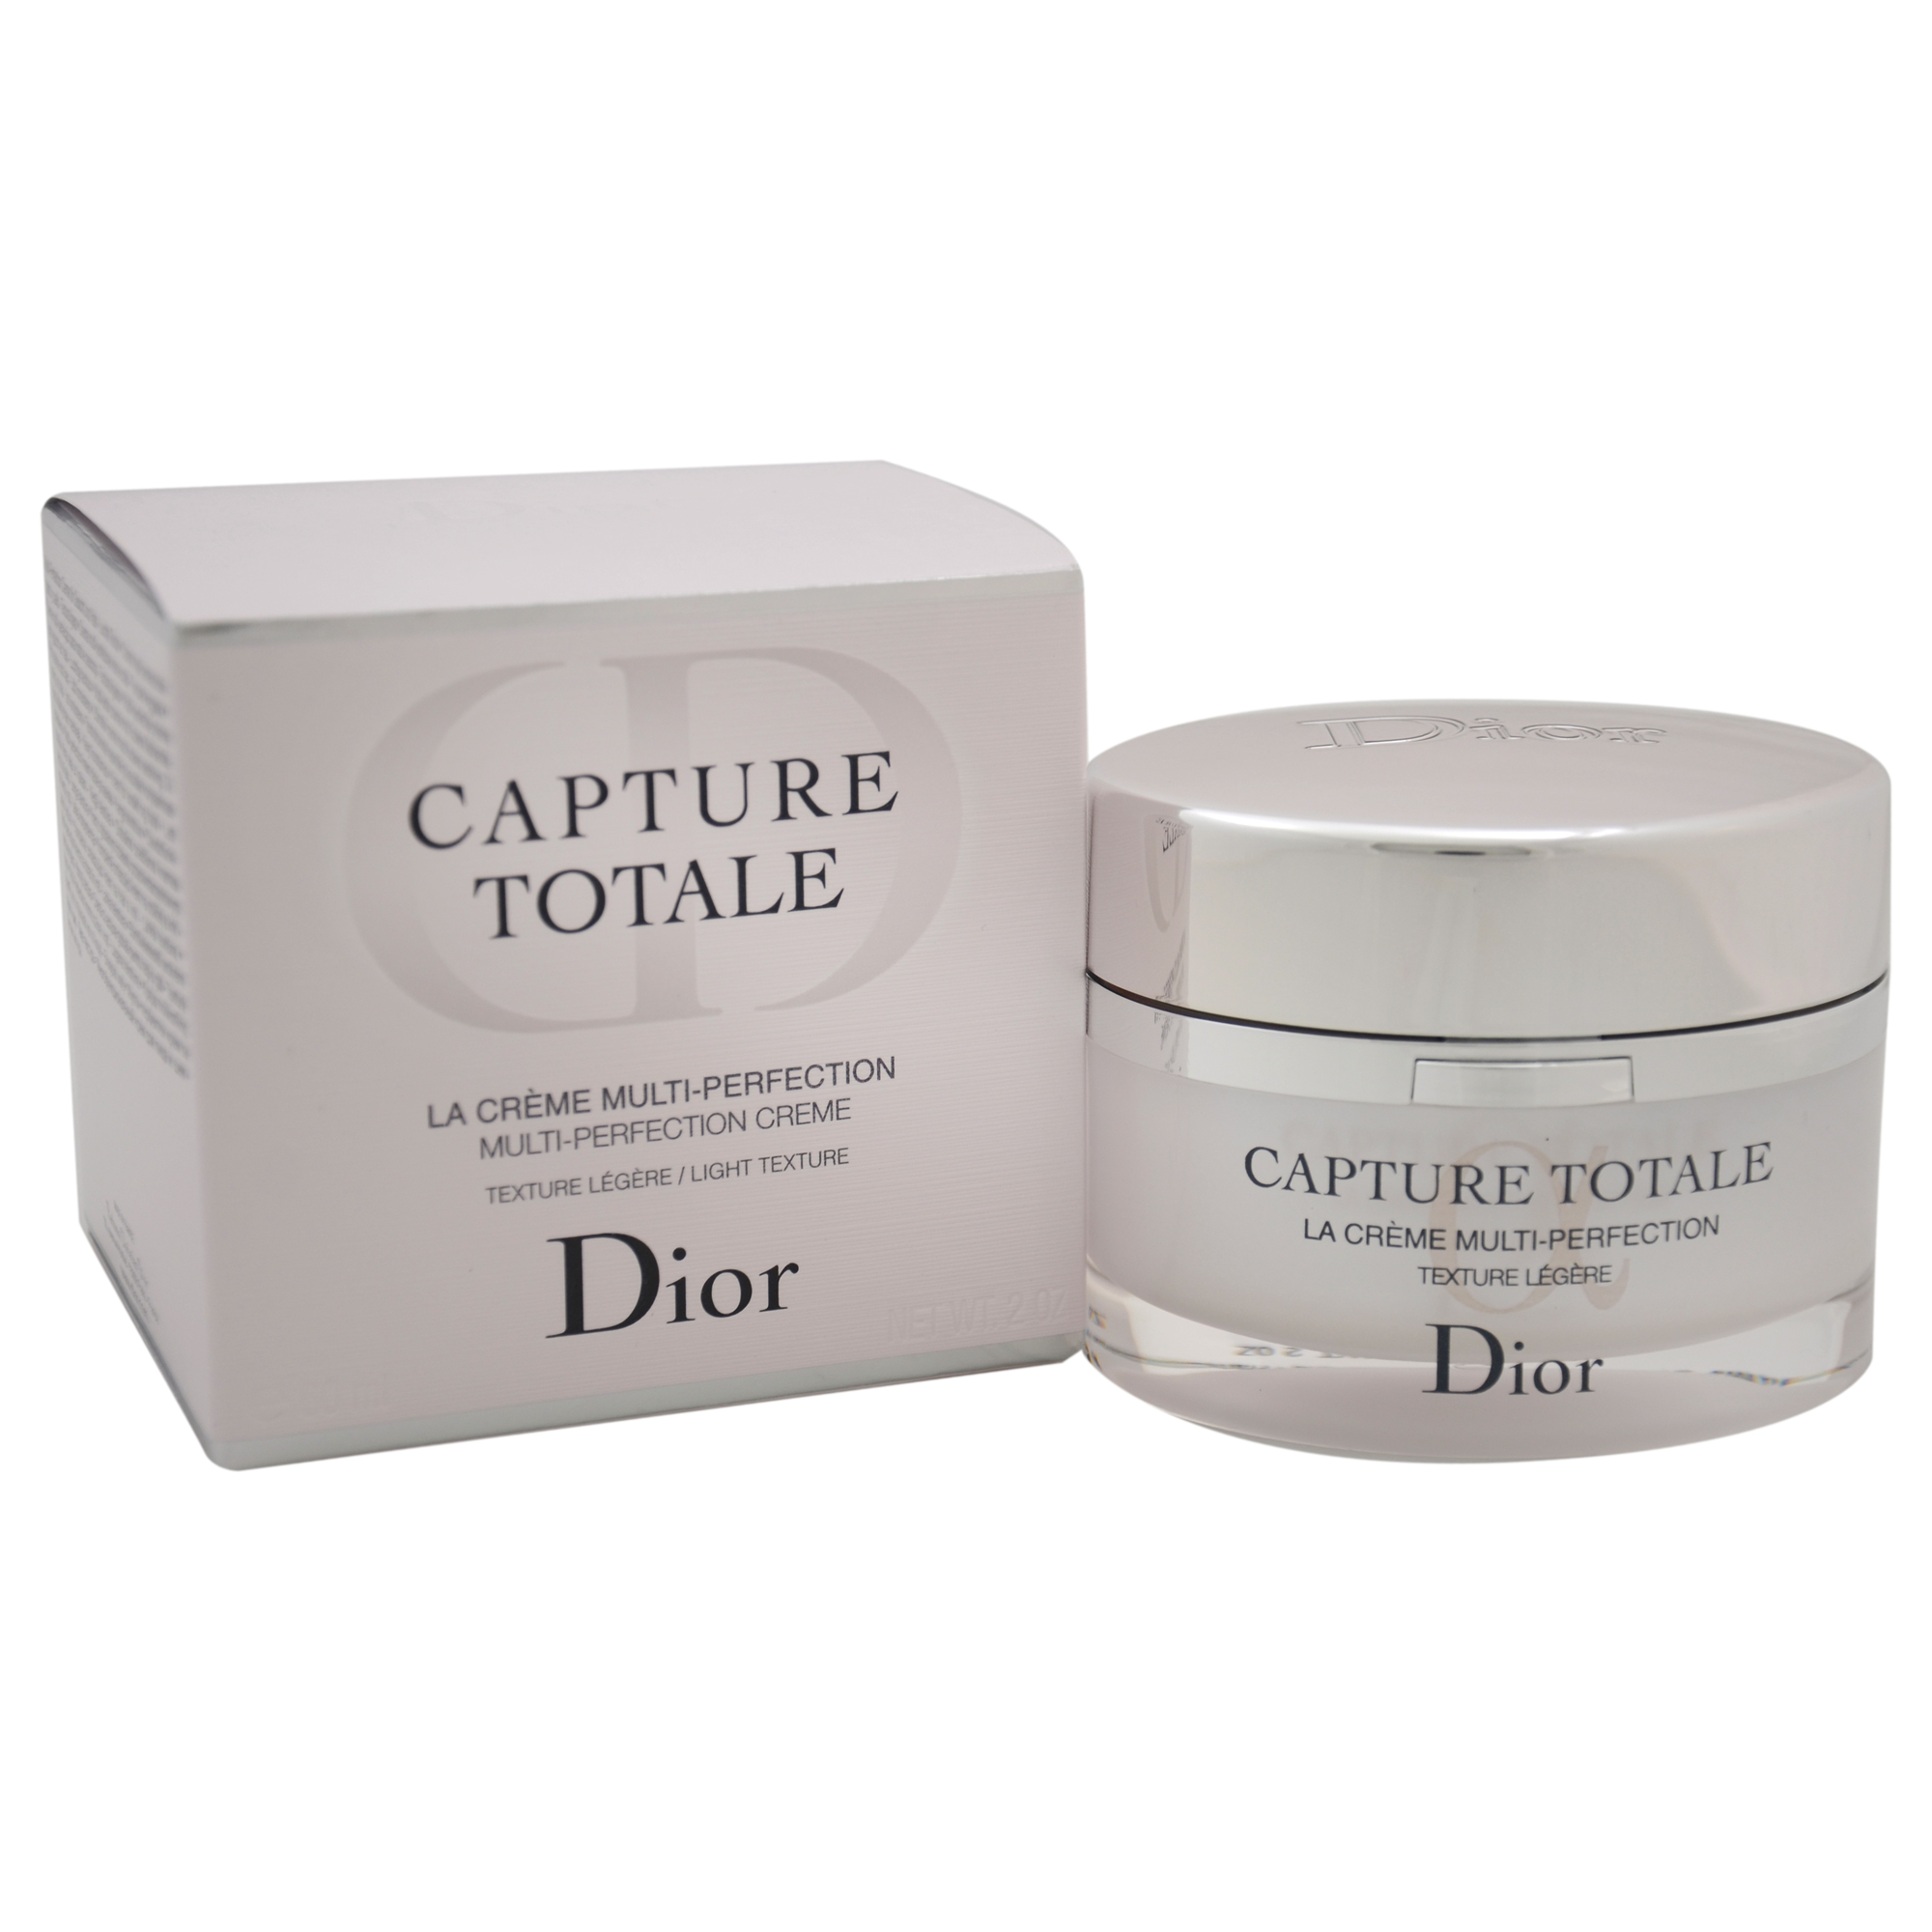 capture totale multi perfection creme christian dior 2oz cream tanga. Black Bedroom Furniture Sets. Home Design Ideas